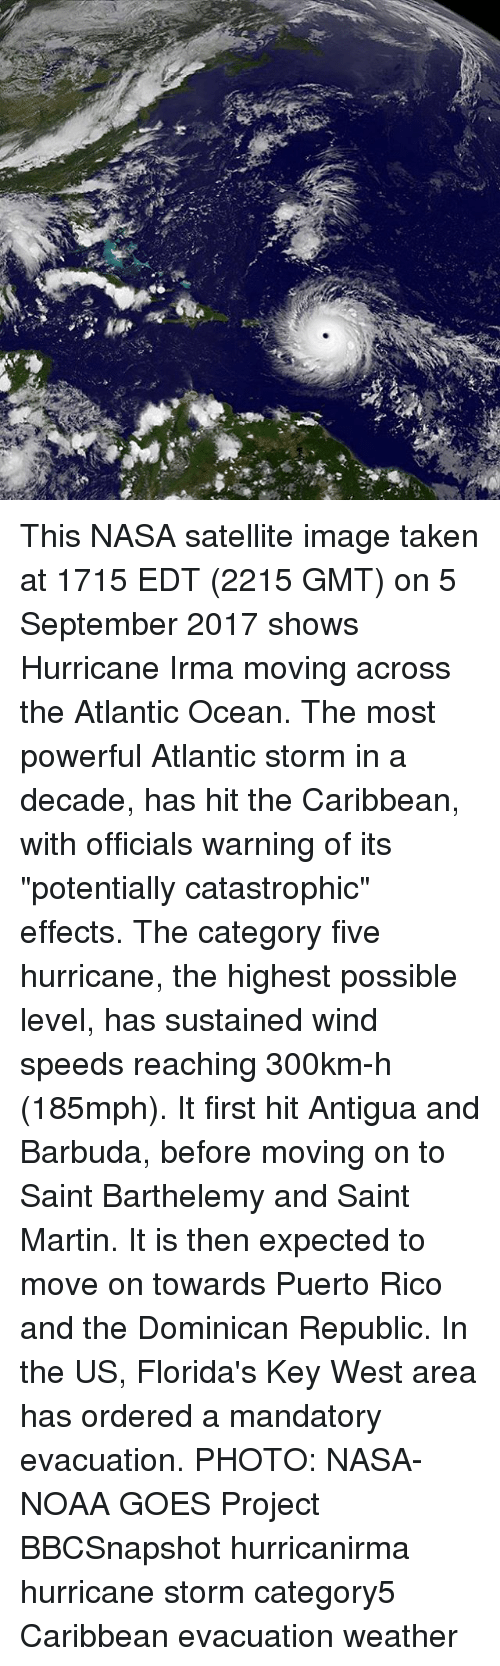 """Projecting: This NASA satellite image taken at 1715 EDT (2215 GMT) on 5 September 2017 shows Hurricane Irma moving across the Atlantic Ocean. The most powerful Atlantic storm in a decade, has hit the Caribbean, with officials warning of its """"potentially catastrophic"""" effects. The category five hurricane, the highest possible level, has sustained wind speeds reaching 300km-h (185mph). It first hit Antigua and Barbuda, before moving on to Saint Barthelemy and Saint Martin. It is then expected to move on towards Puerto Rico and the Dominican Republic. In the US, Florida's Key West area has ordered a mandatory evacuation. PHOTO: NASA-NOAA GOES Project BBCSnapshot hurricanirma hurricane storm category5 Caribbean evacuation weather"""